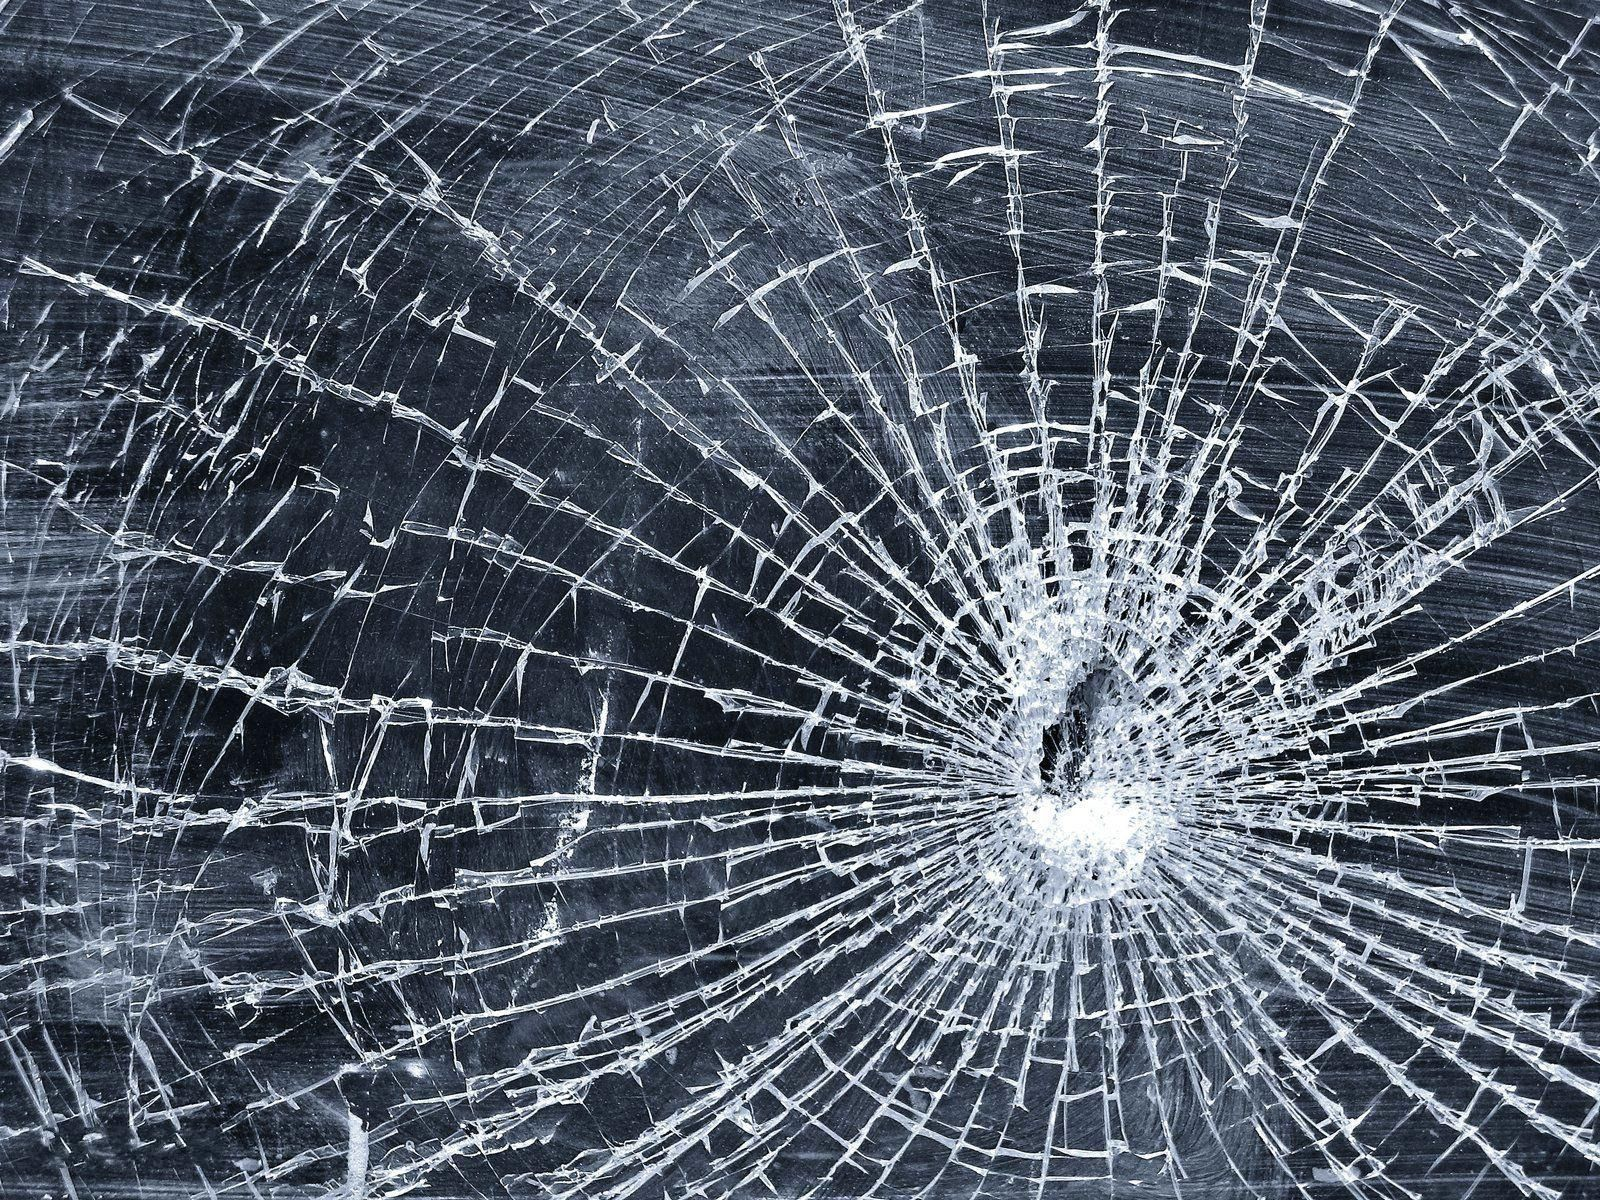 cracked glass wallpaper | Backgrounds | Pinterest | Broken glass and ...